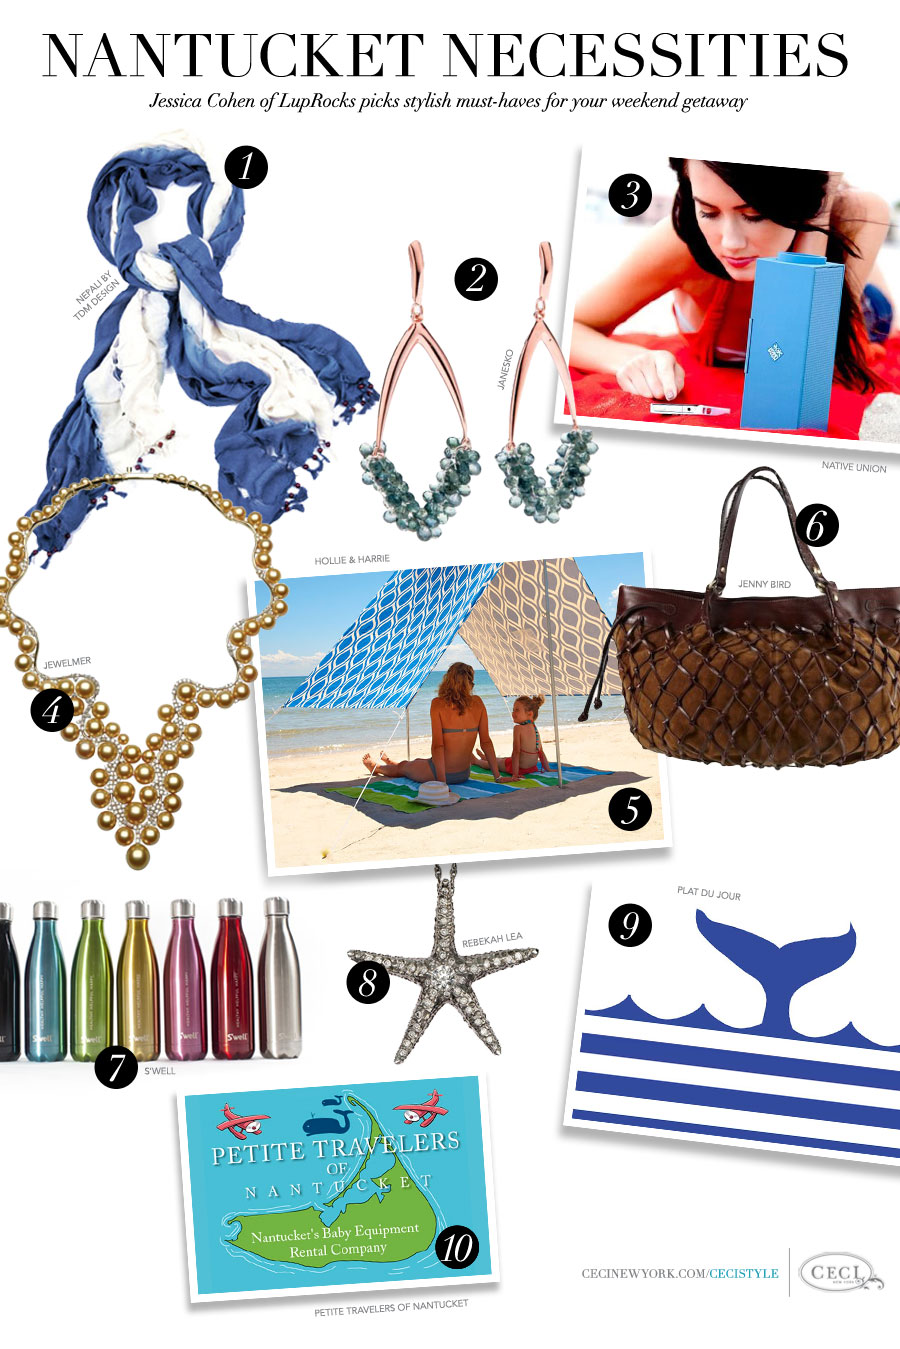 Nantucket Necessities - Jessica Cohen of LupRocks picks stylish must-haves for your weekend getaway